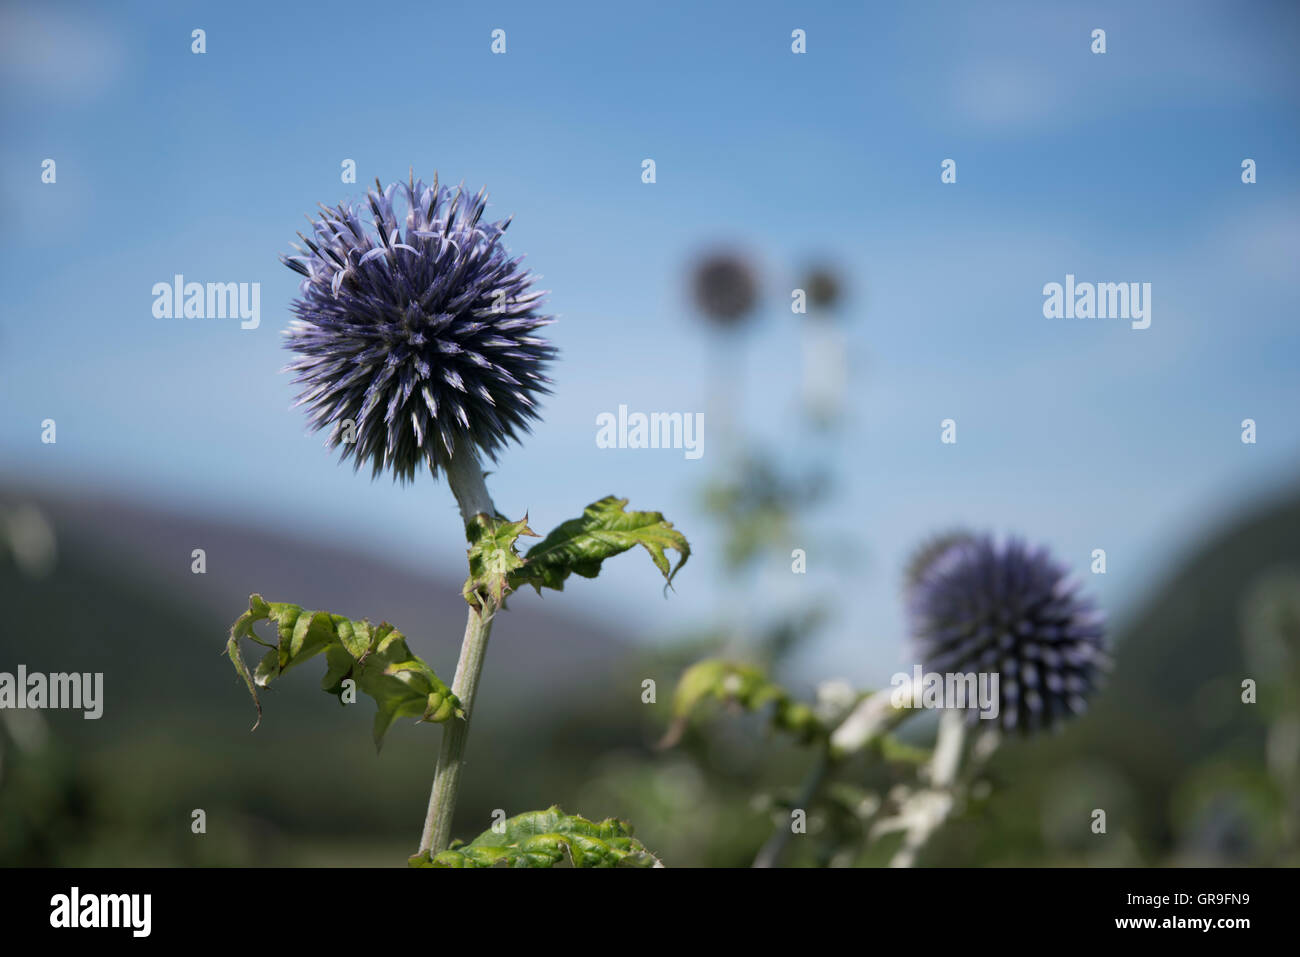 Echinops ritro Taplow Blue ( Globe Thistle ) growing in the Borrowdale Valley, Lake District, Cumbria, UK - Stock Image